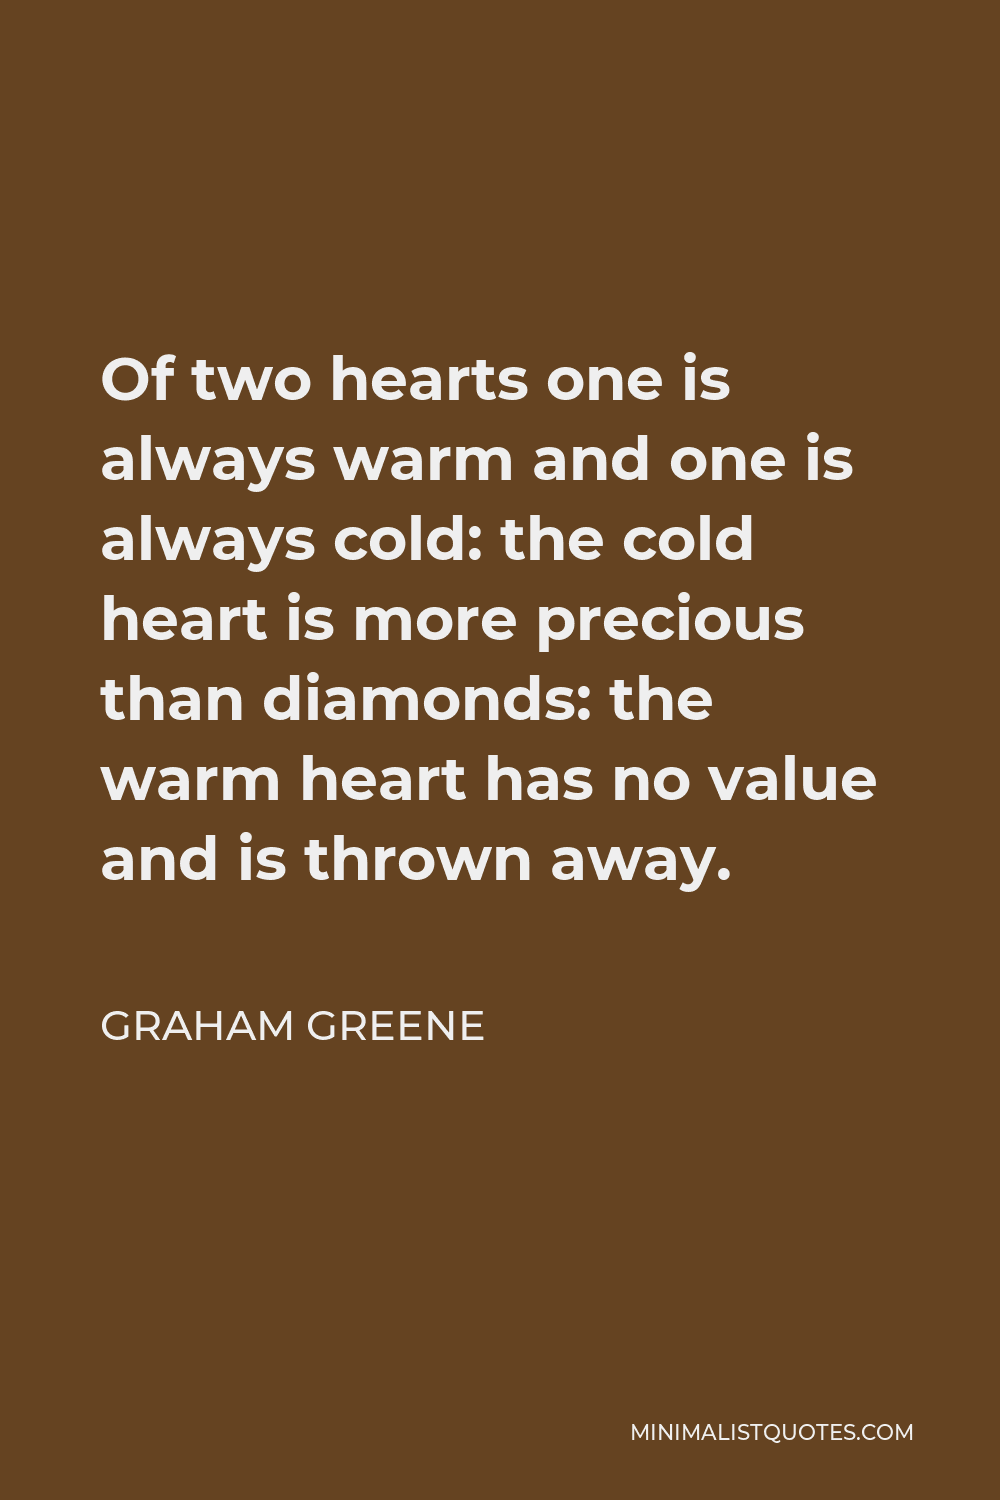 Graham Greene Quote - Of two hearts one is always warm and one is always cold: the cold heart is more precious than diamonds: the warm heart has no value and is thrown away.